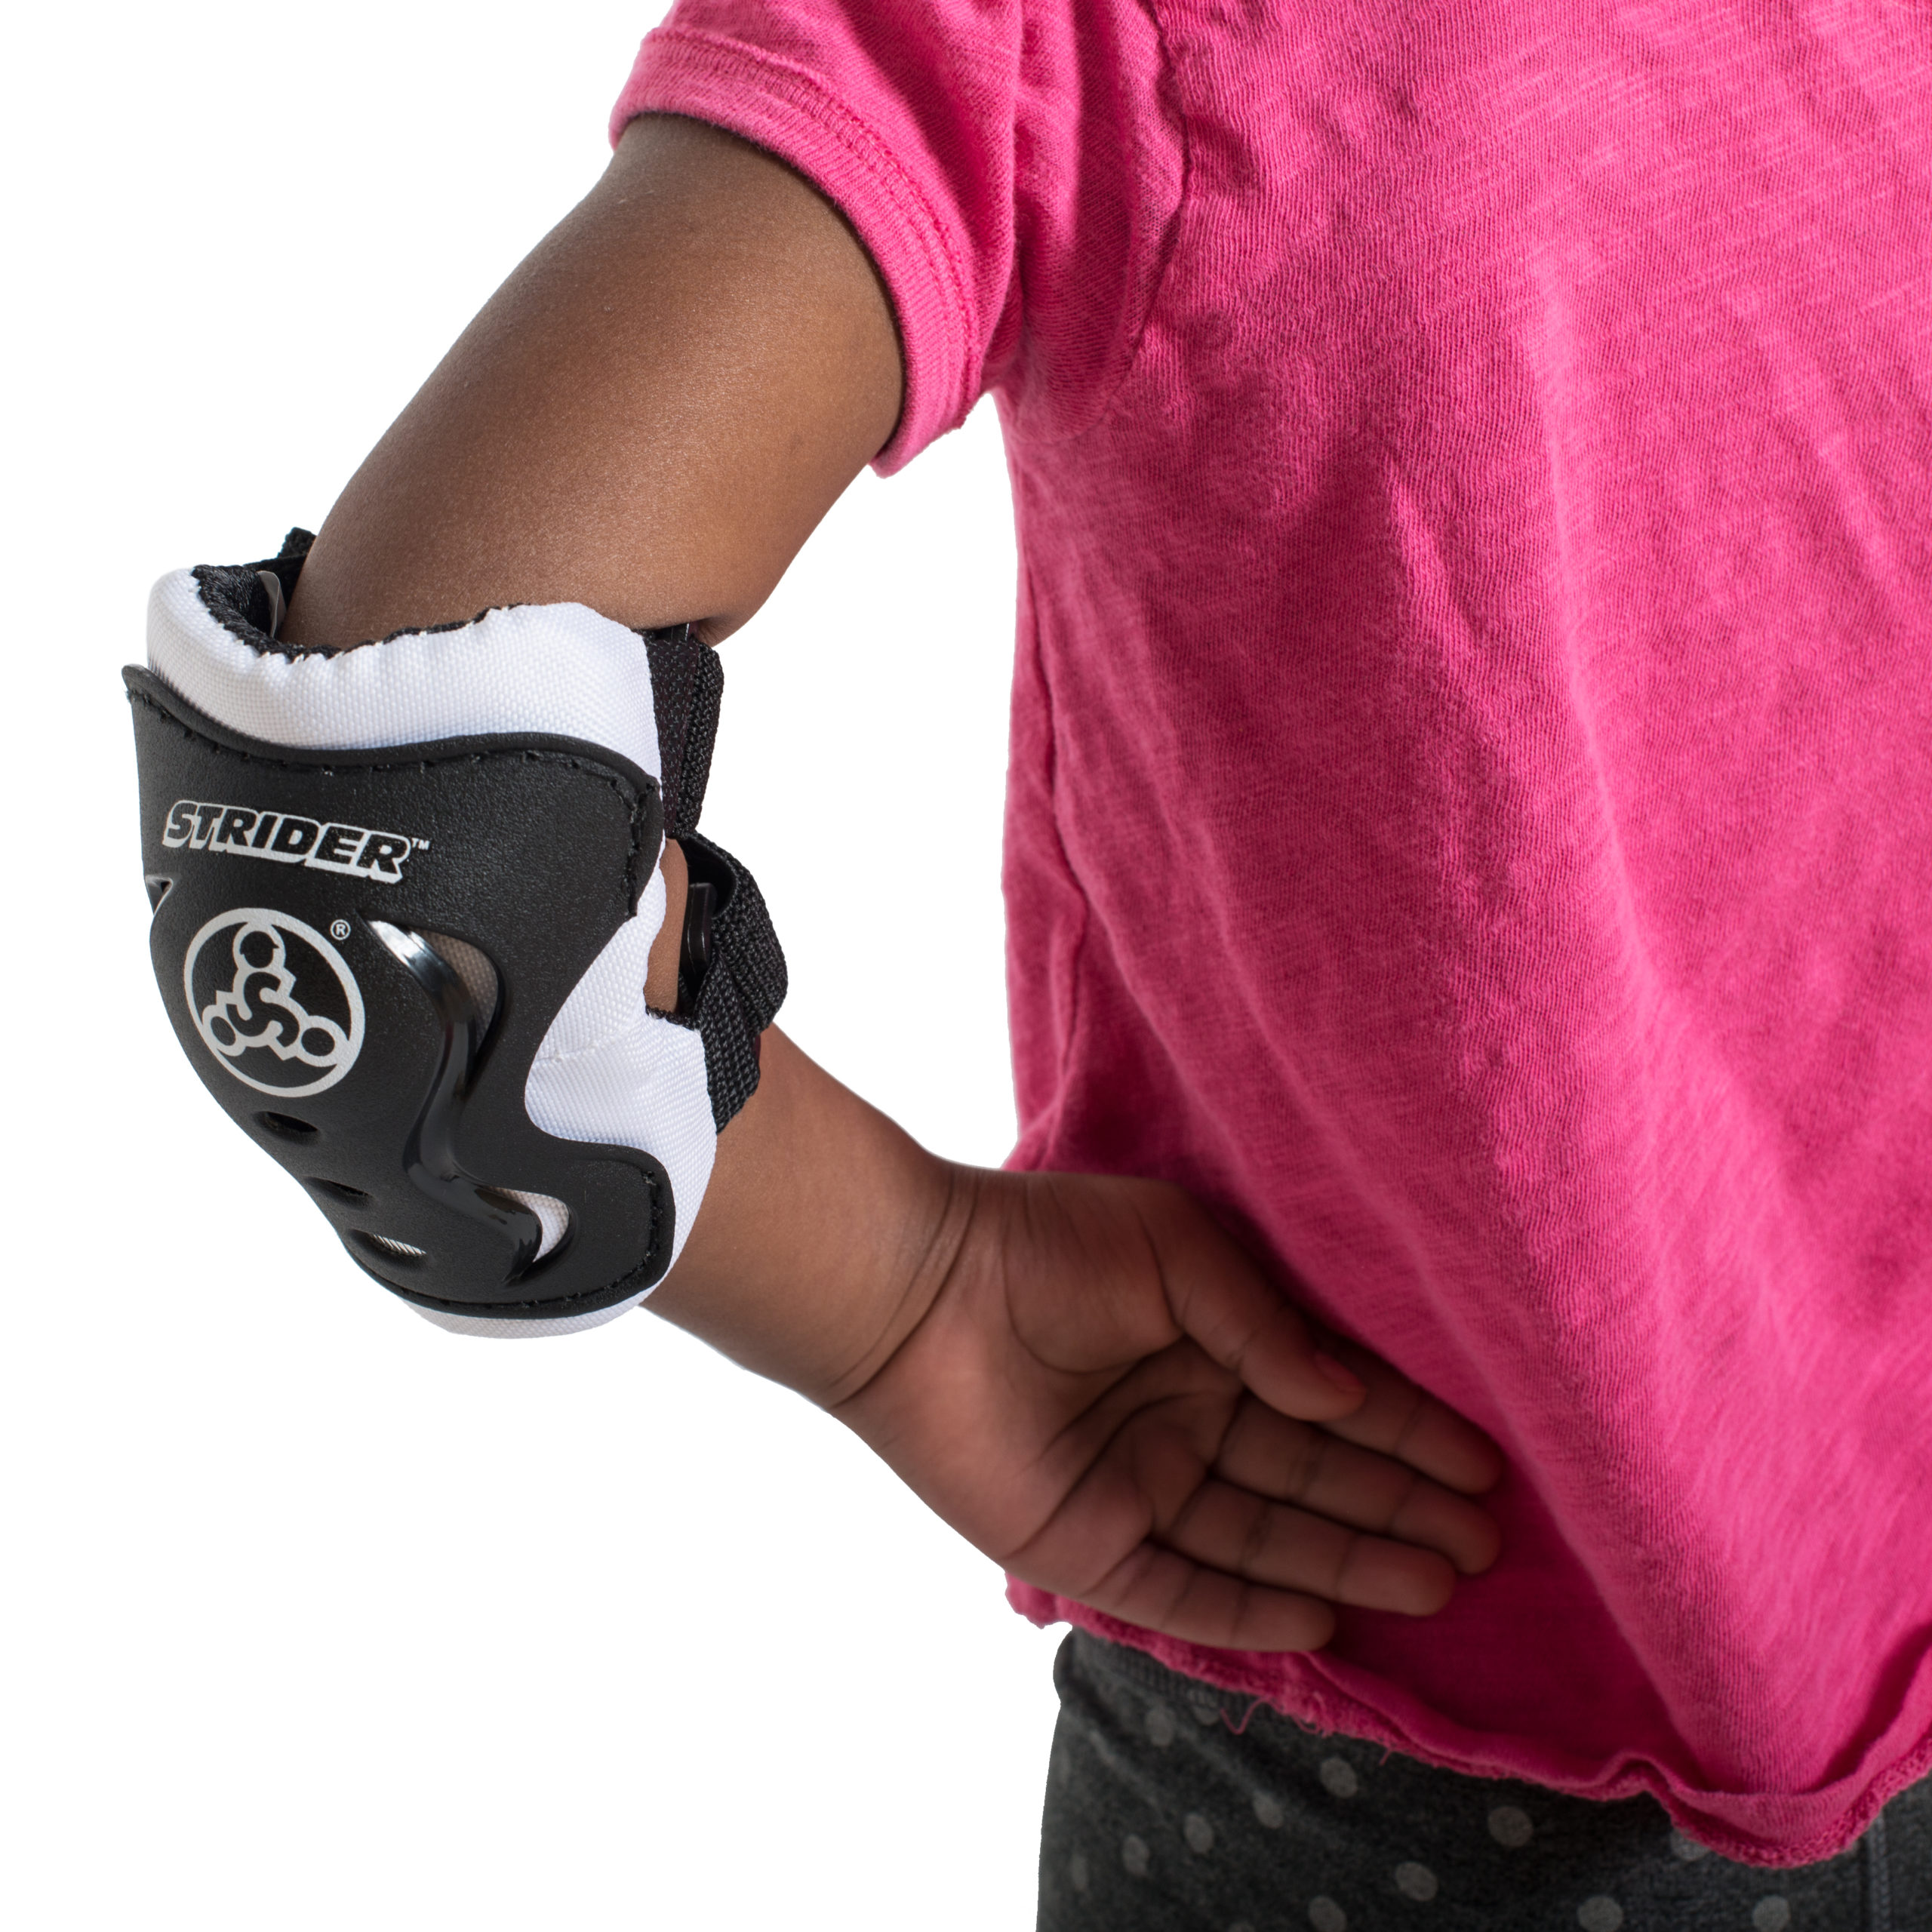 Studio image of elbow pad on girl